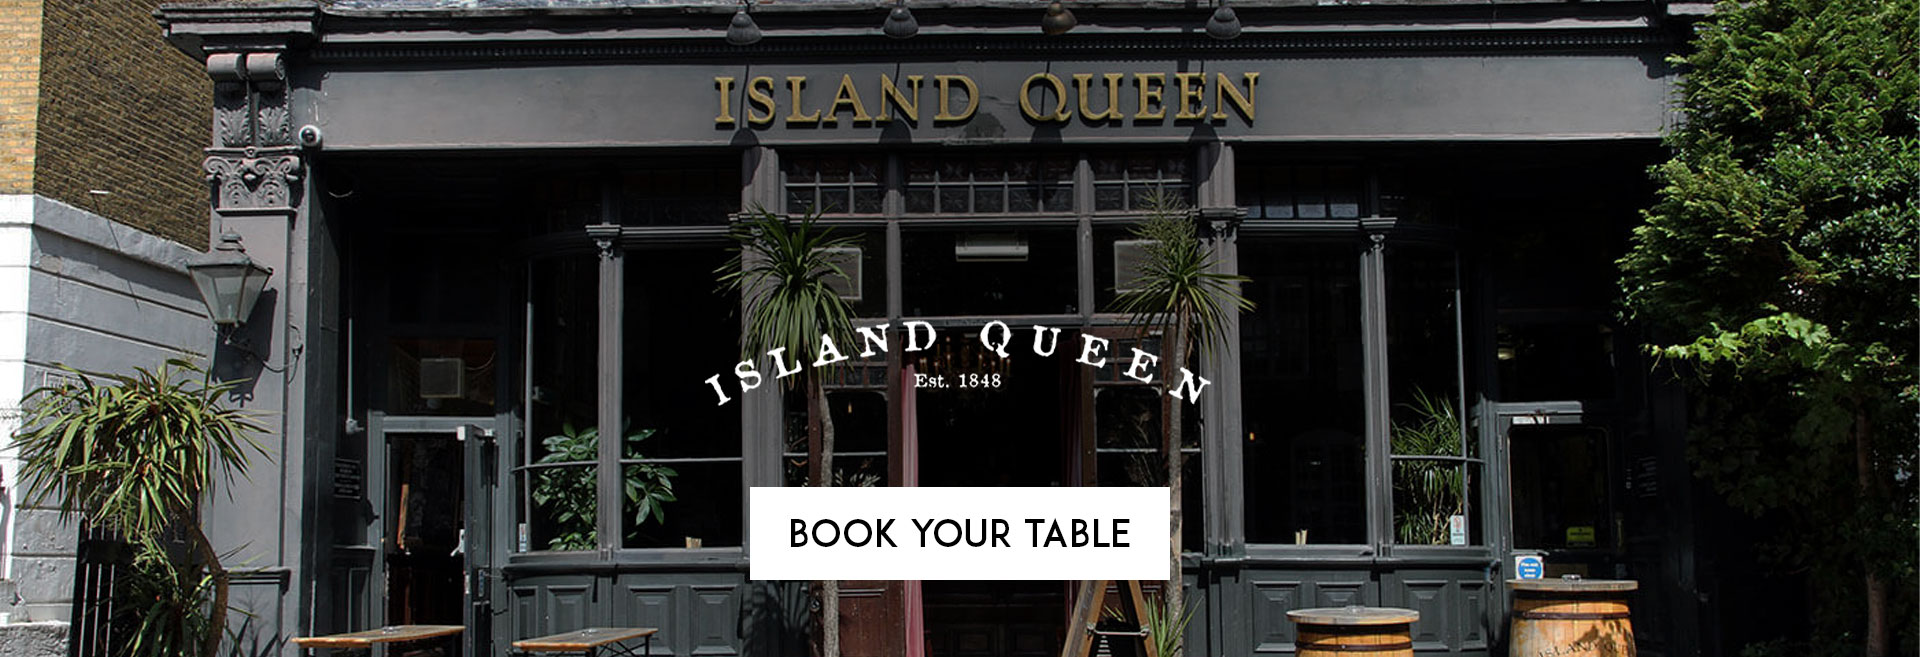 Book Your Table at The Island Queen